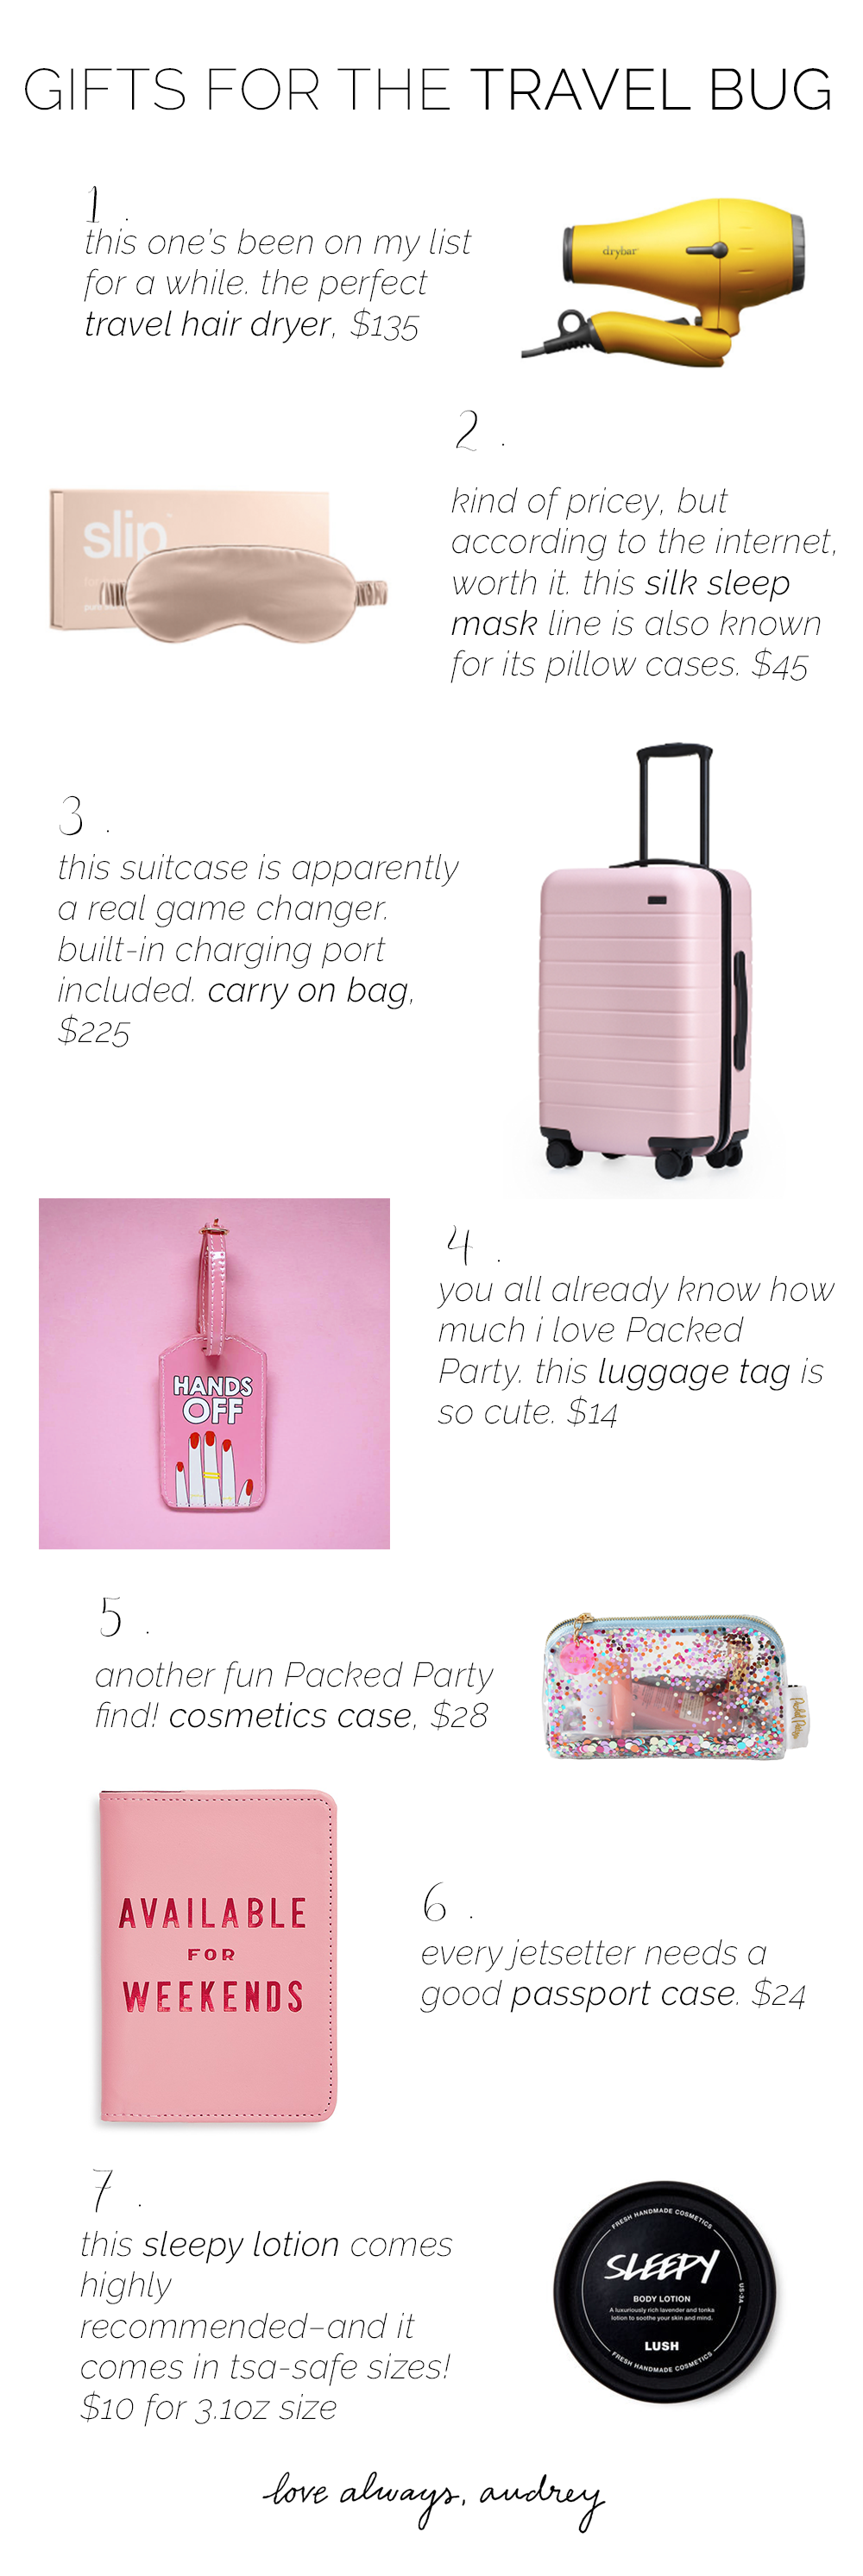 Fun gifts for travelers!